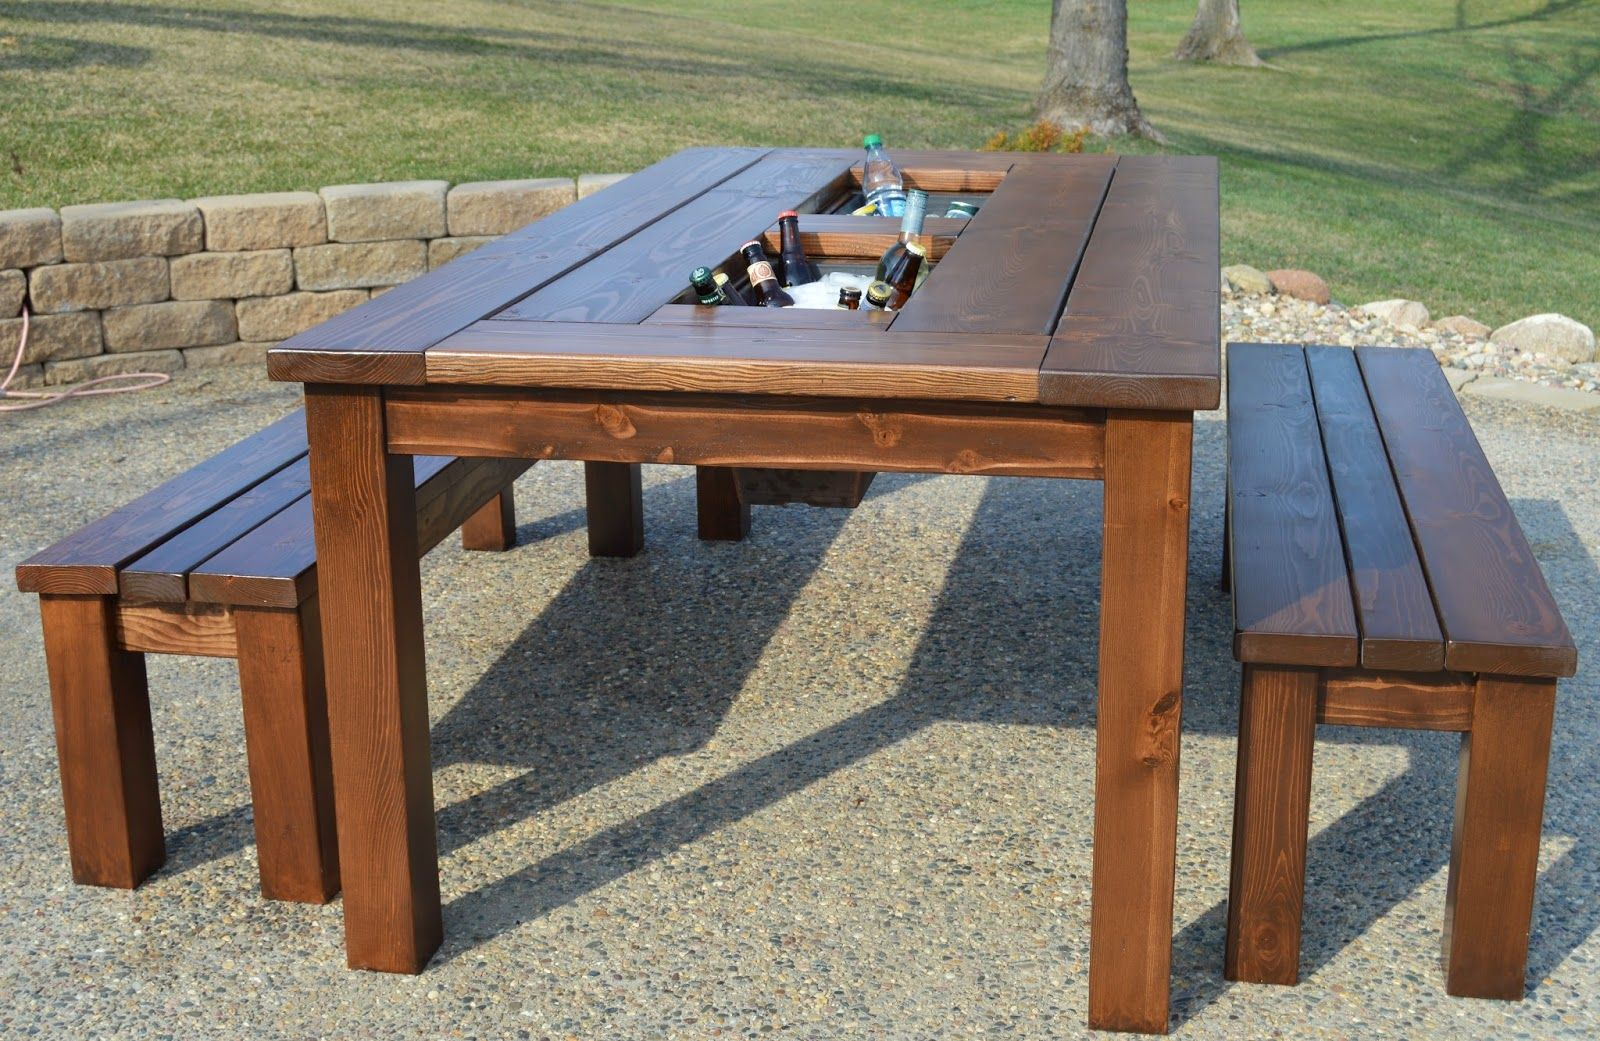 Build a Patio Table with Built In Ice Boxes   Patio table  Patios and  PlantersBuild a Patio Table with Built In Ice Boxes   Patio table  Patios  . Patio Side Table Woodworking Plans. Home Design Ideas